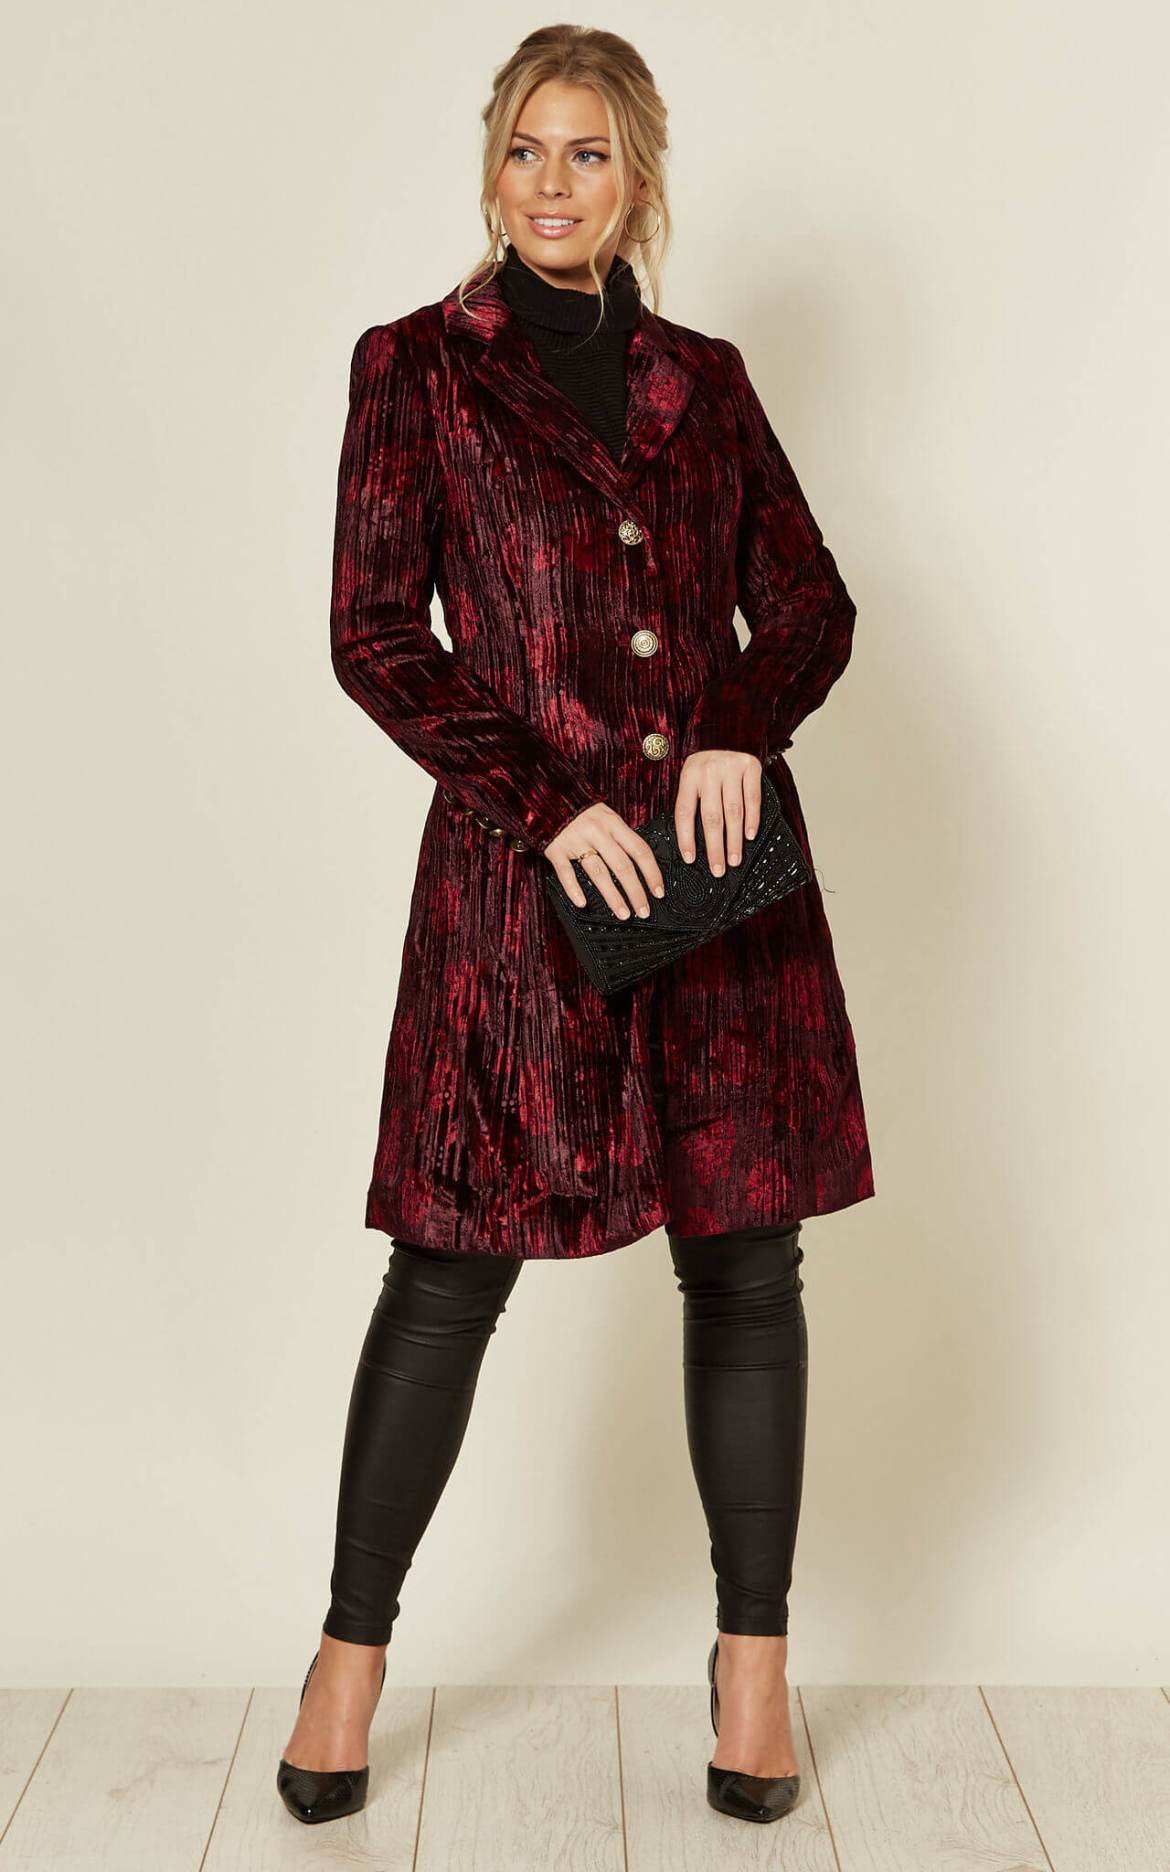 Model wears red crushed velvet coat in floral style print